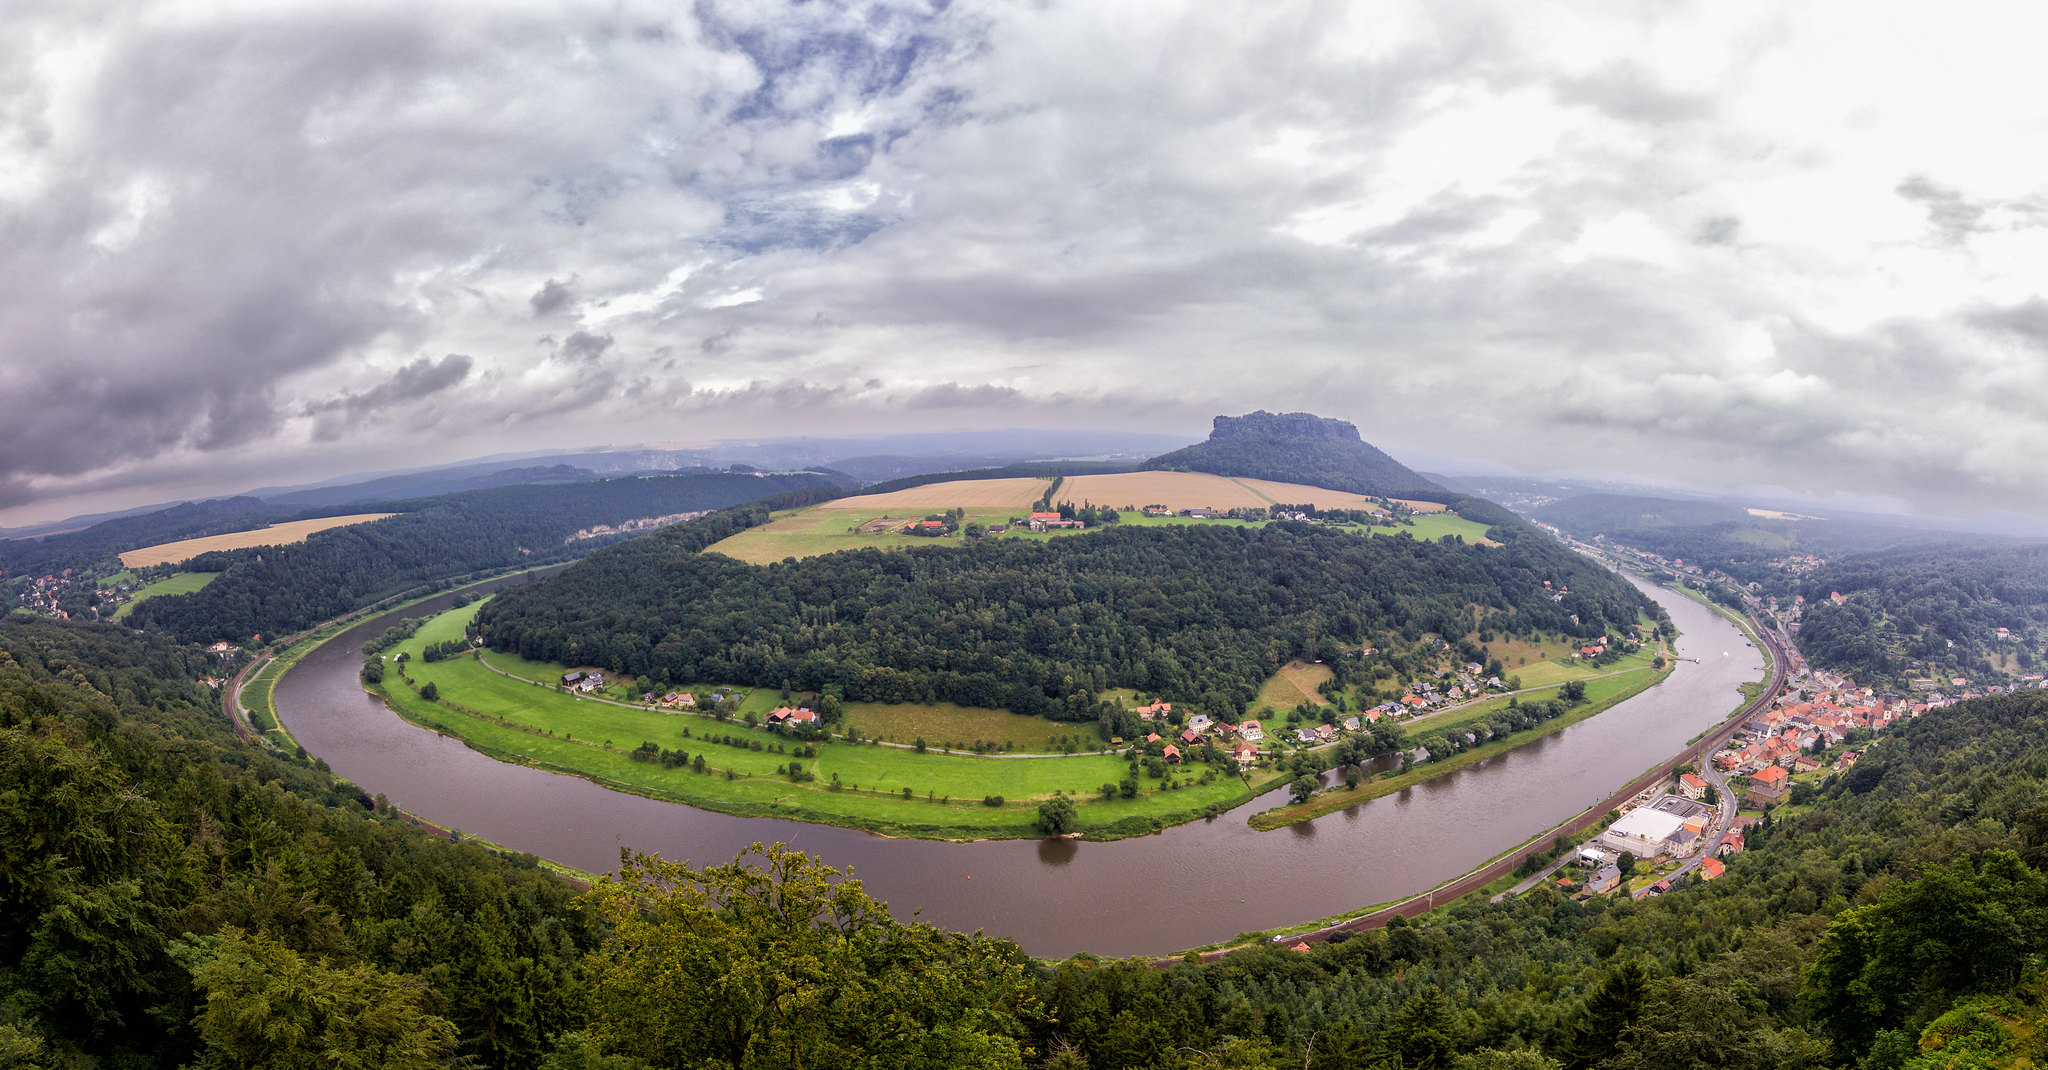 Lilienstein and the river Elbe